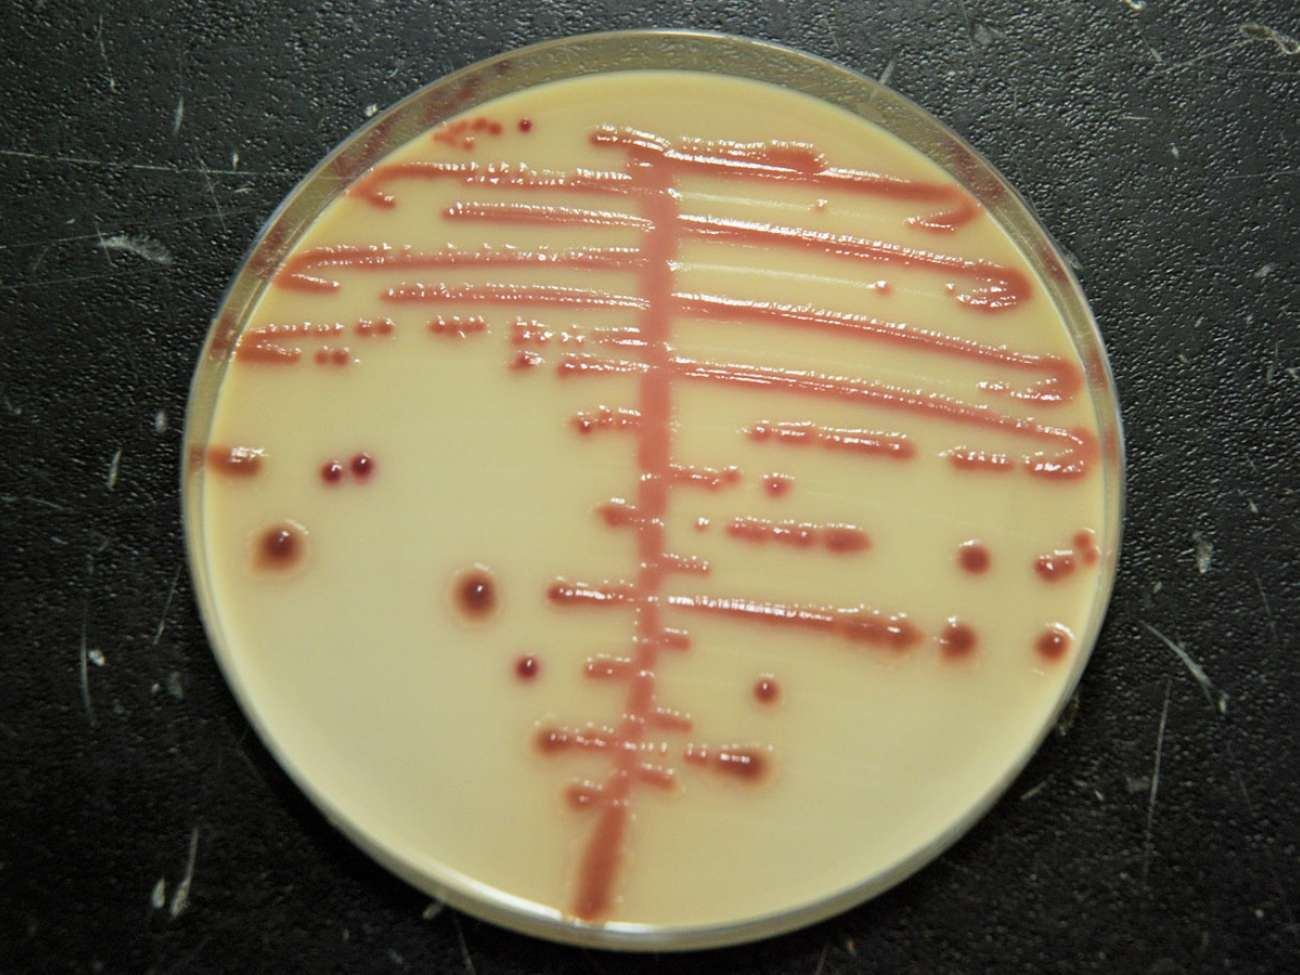 Manual streaking of plates to grow pathogens took time, was less consistent, and could streak less of the plate.